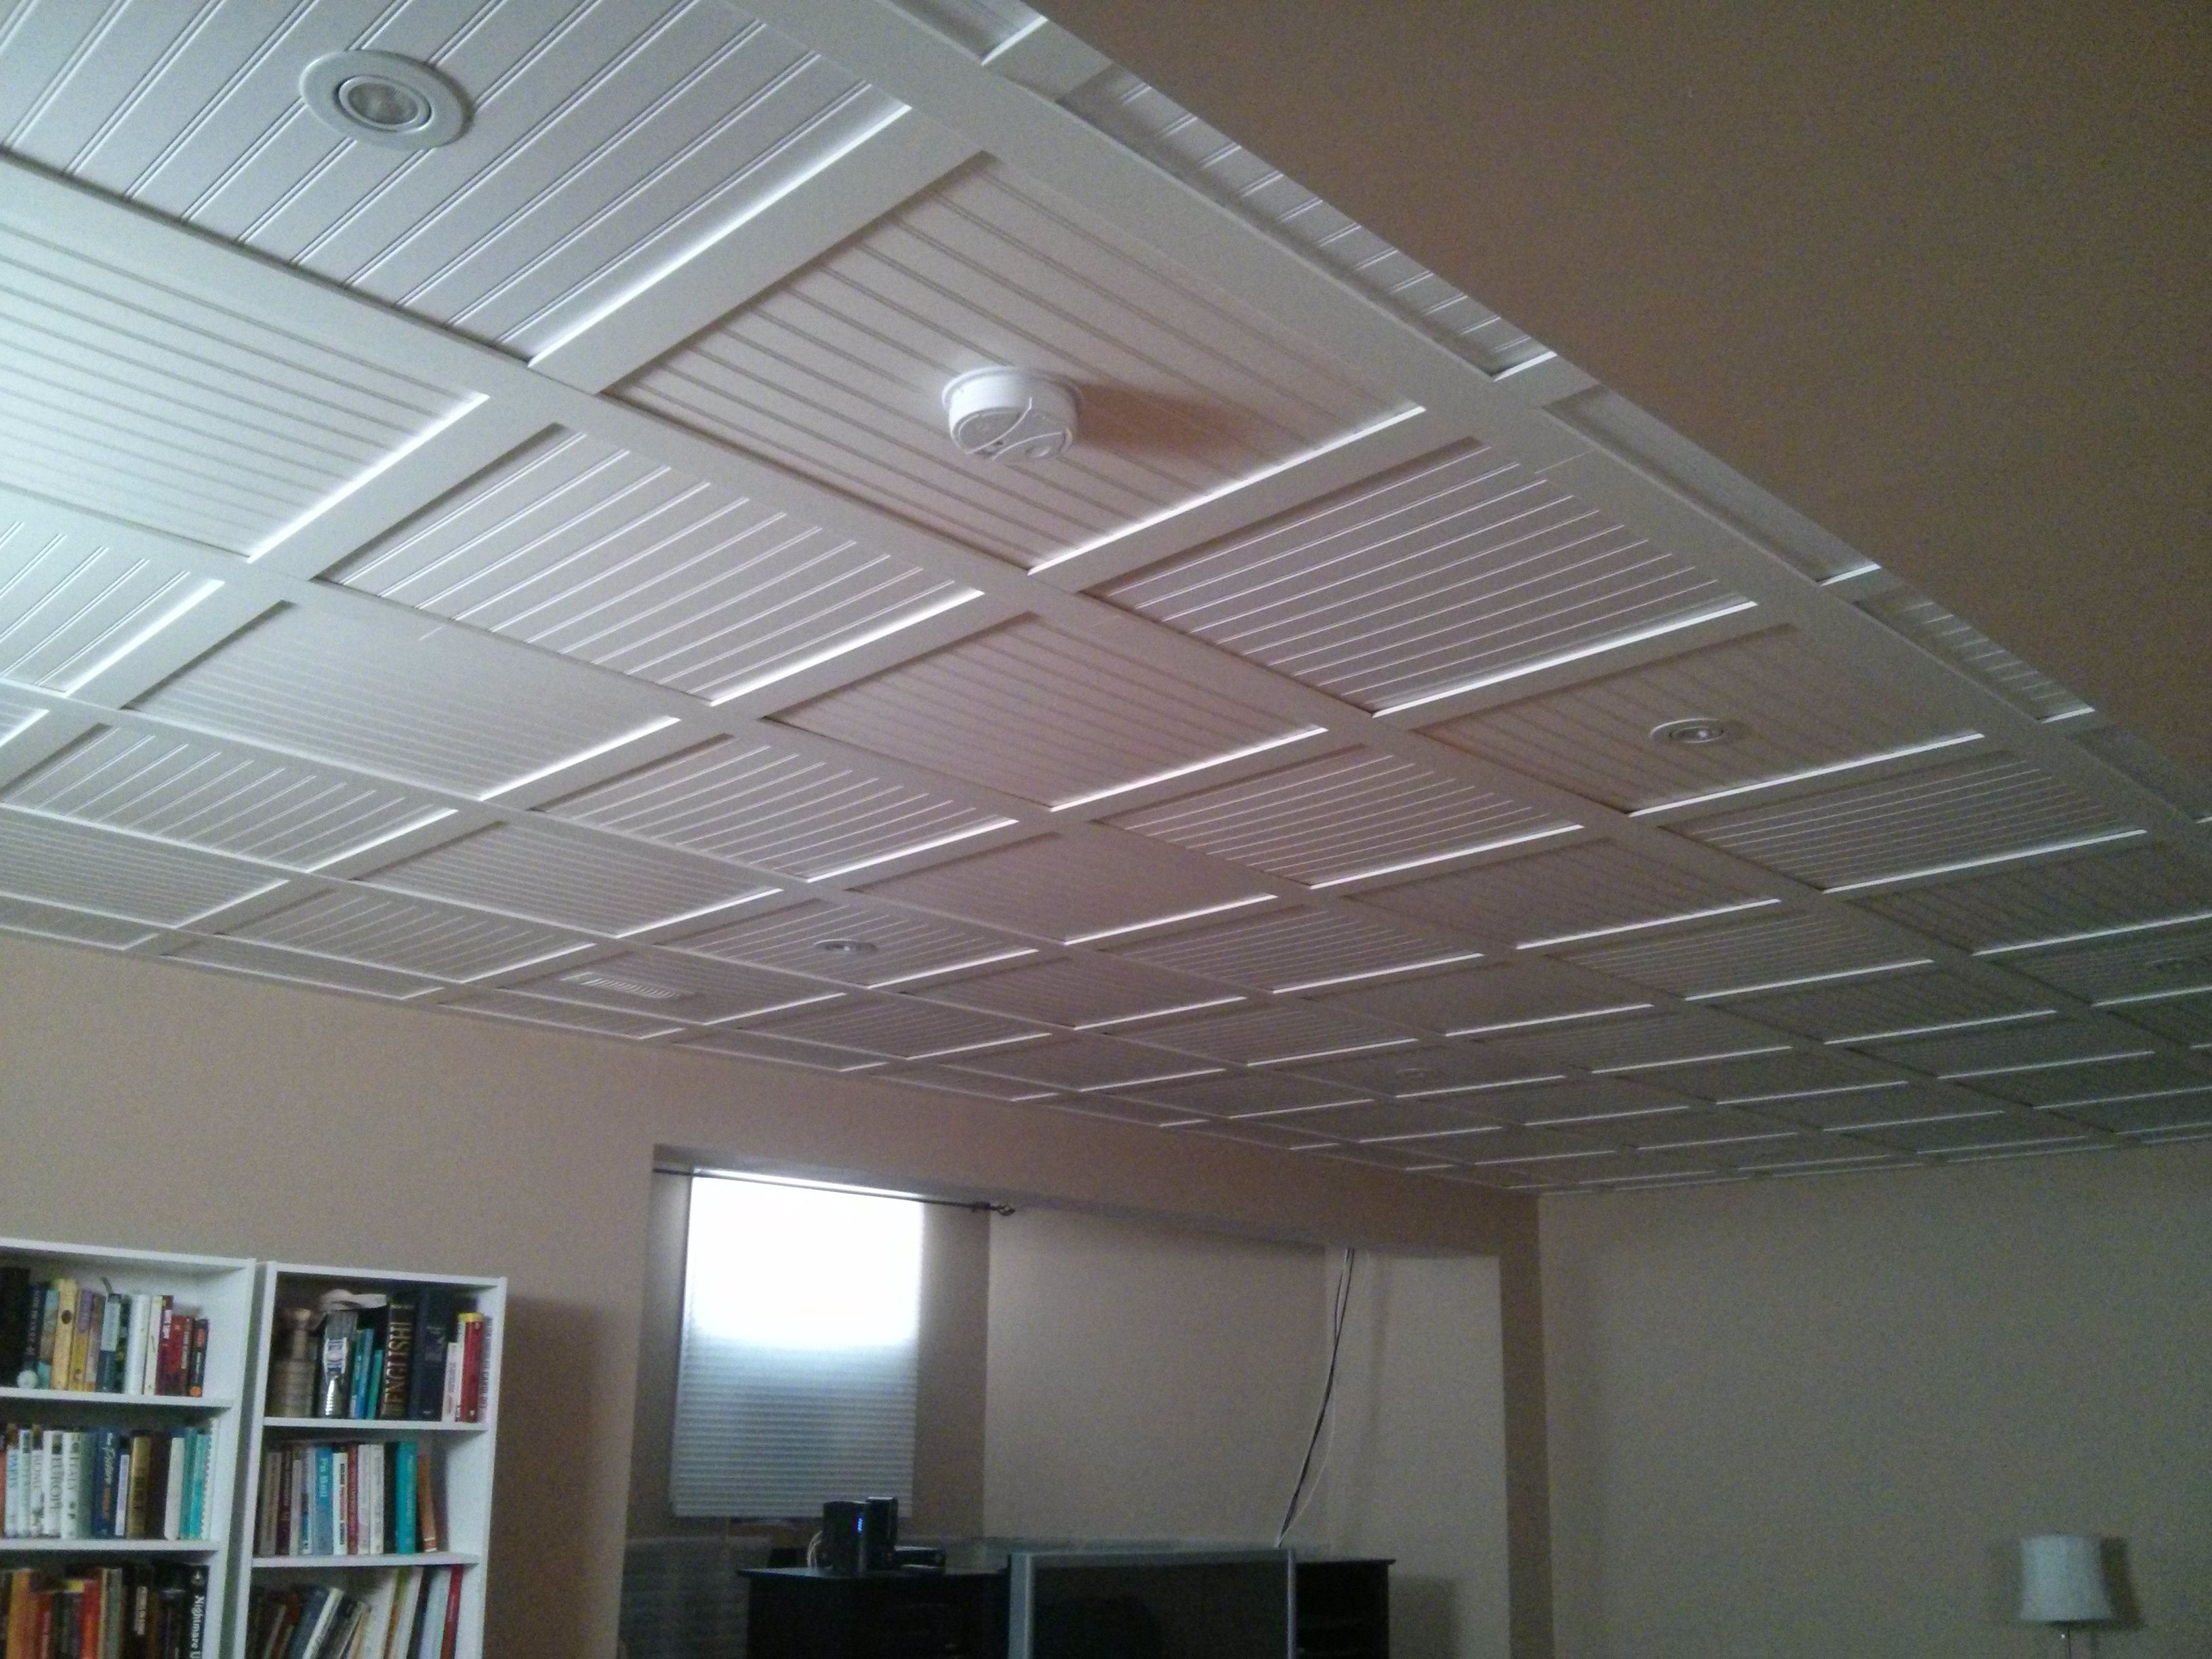 plastic drop ceilings tiles ceiling look ceilling faux for x spacious copper down